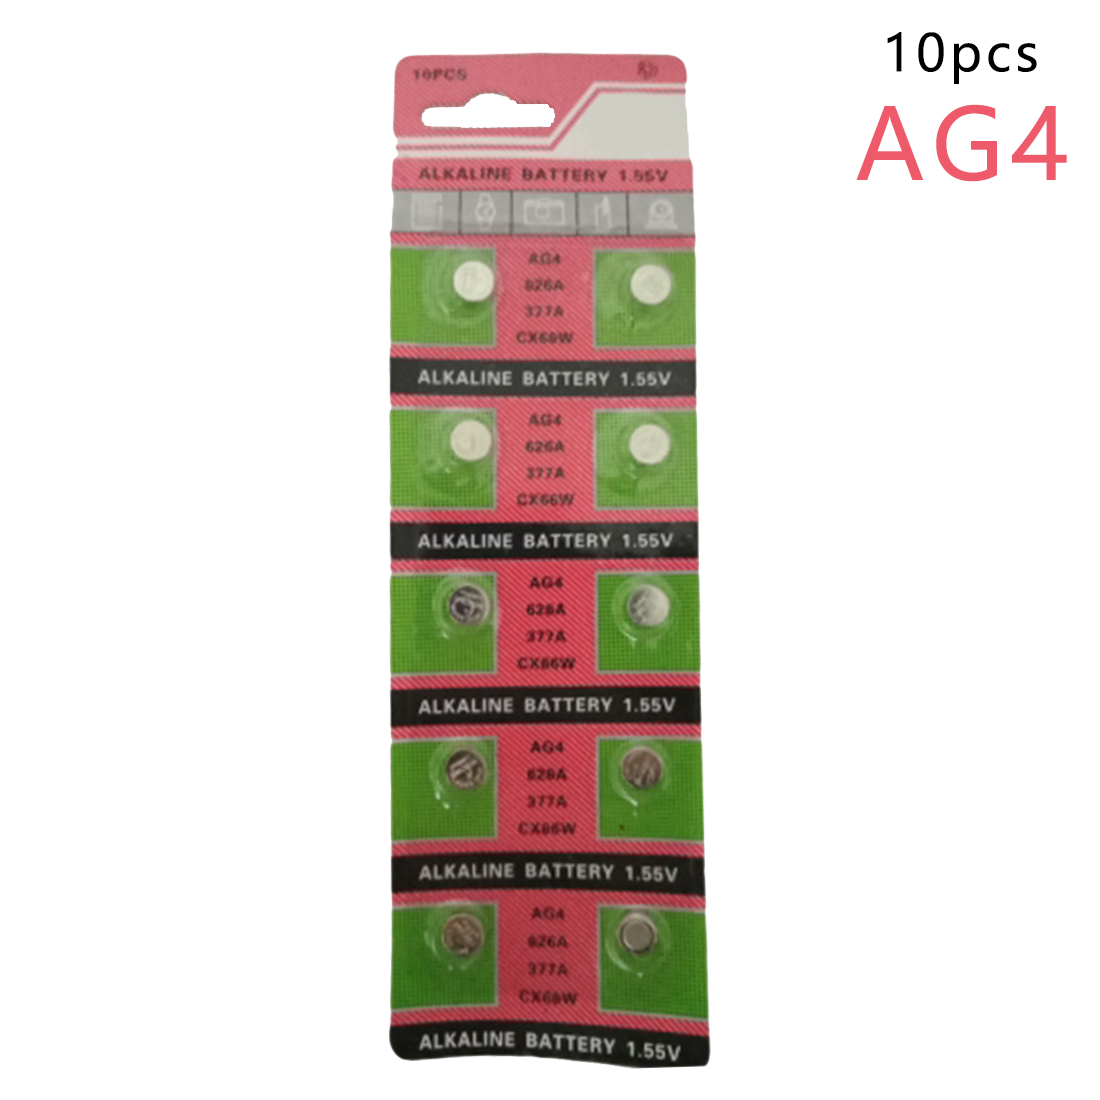 Centechia New Arrival Wholesale 10PCS/lot =1cards AG4 377A 377 LR626 SR626SW SR66 LR66 button cell Watch Coin Battery 10pcs lot retail brand new renata long lasting 377 sr626sw sr626 v377 ag4 watch battery button coin cell swiss made 100